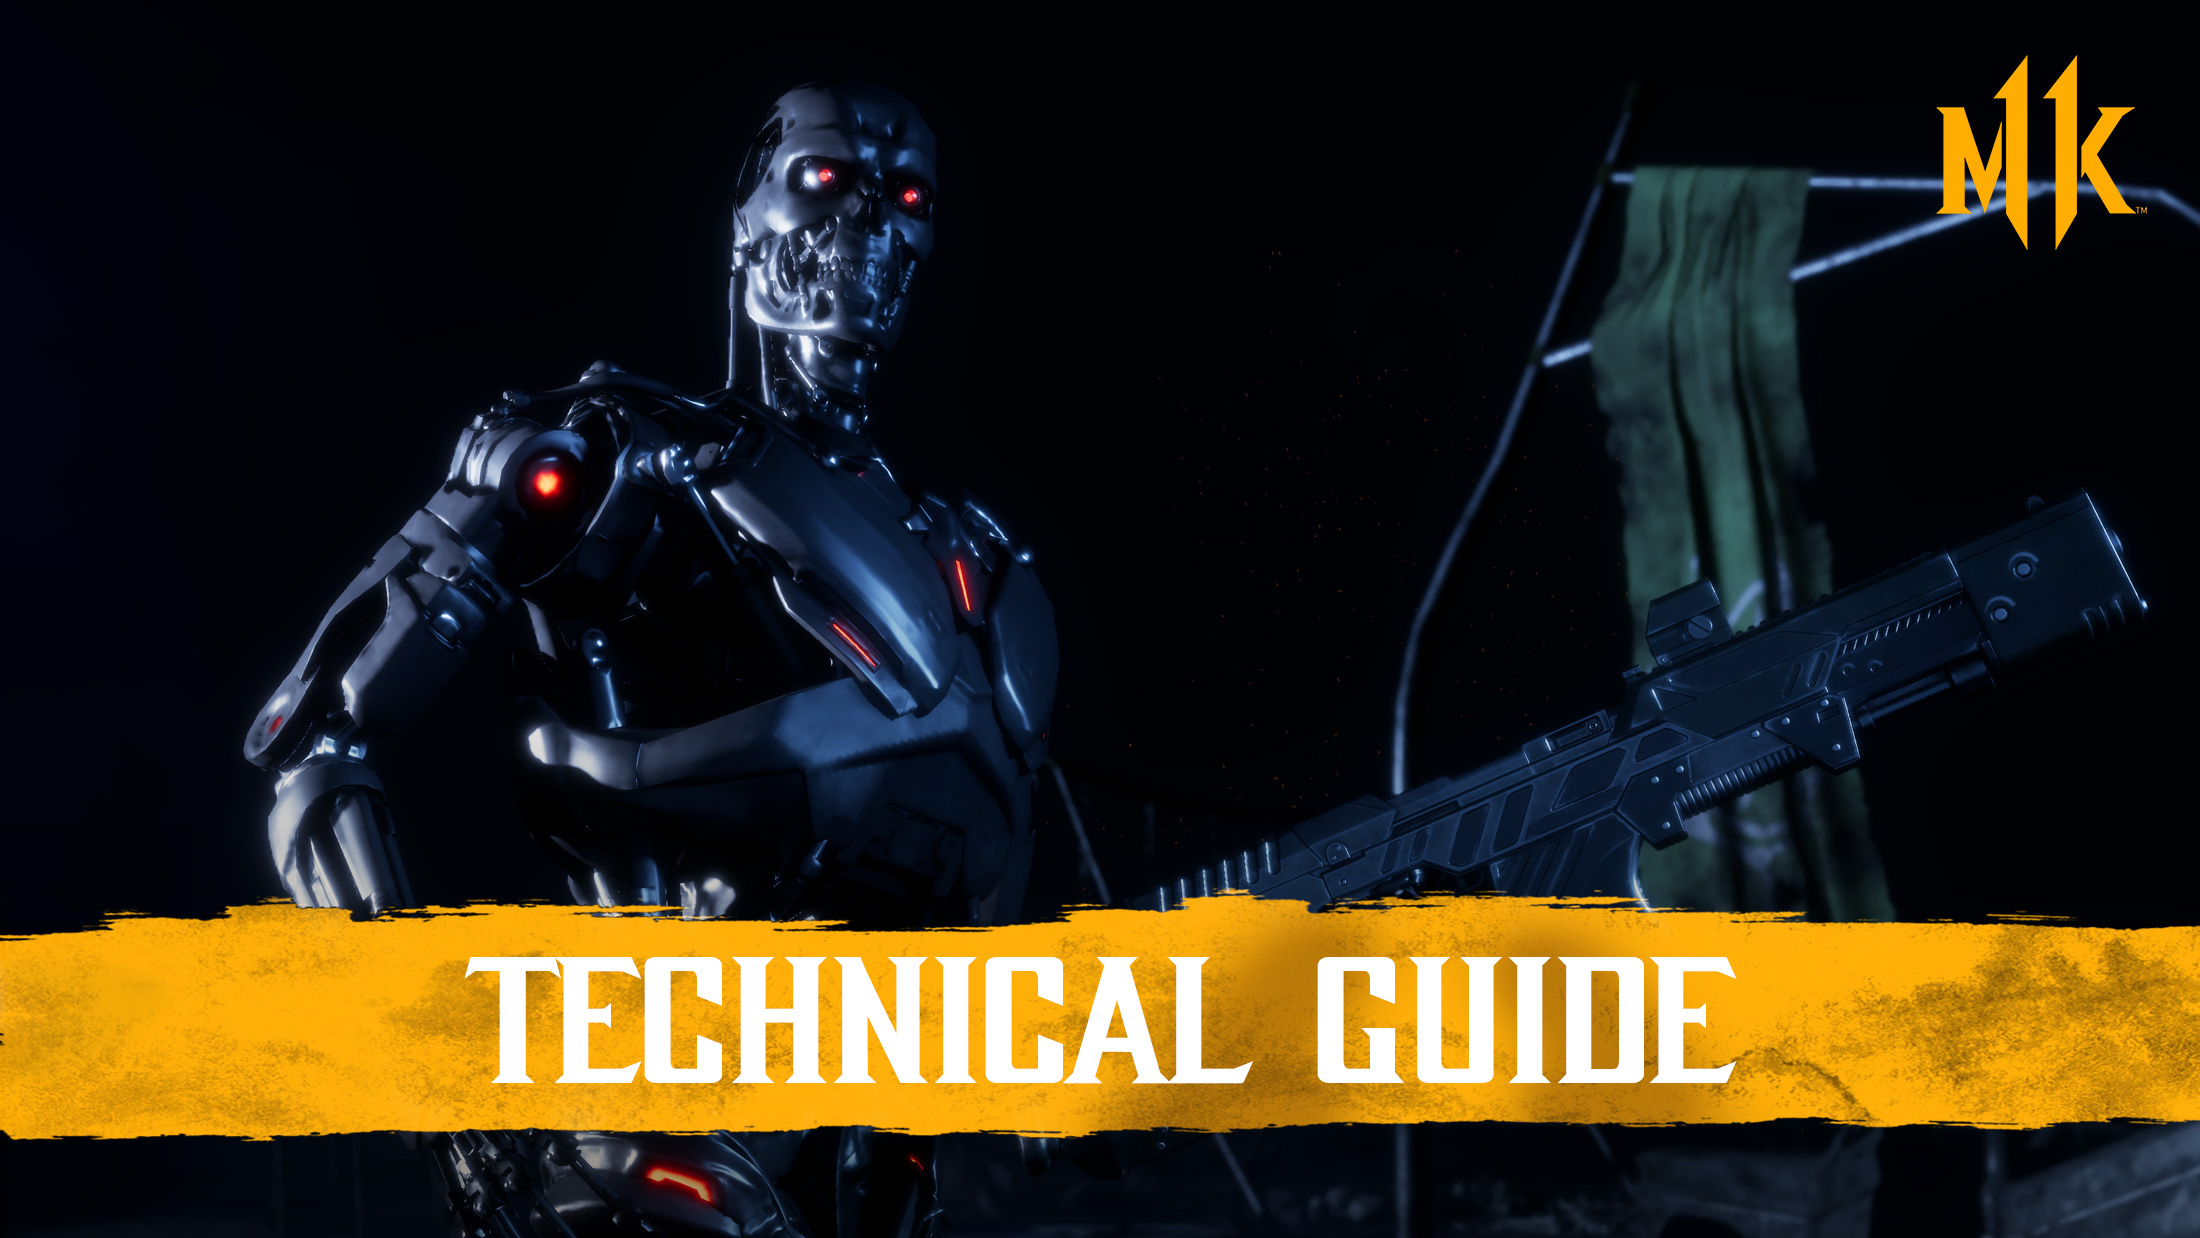 TECHINICAL_GUIDE.jpg